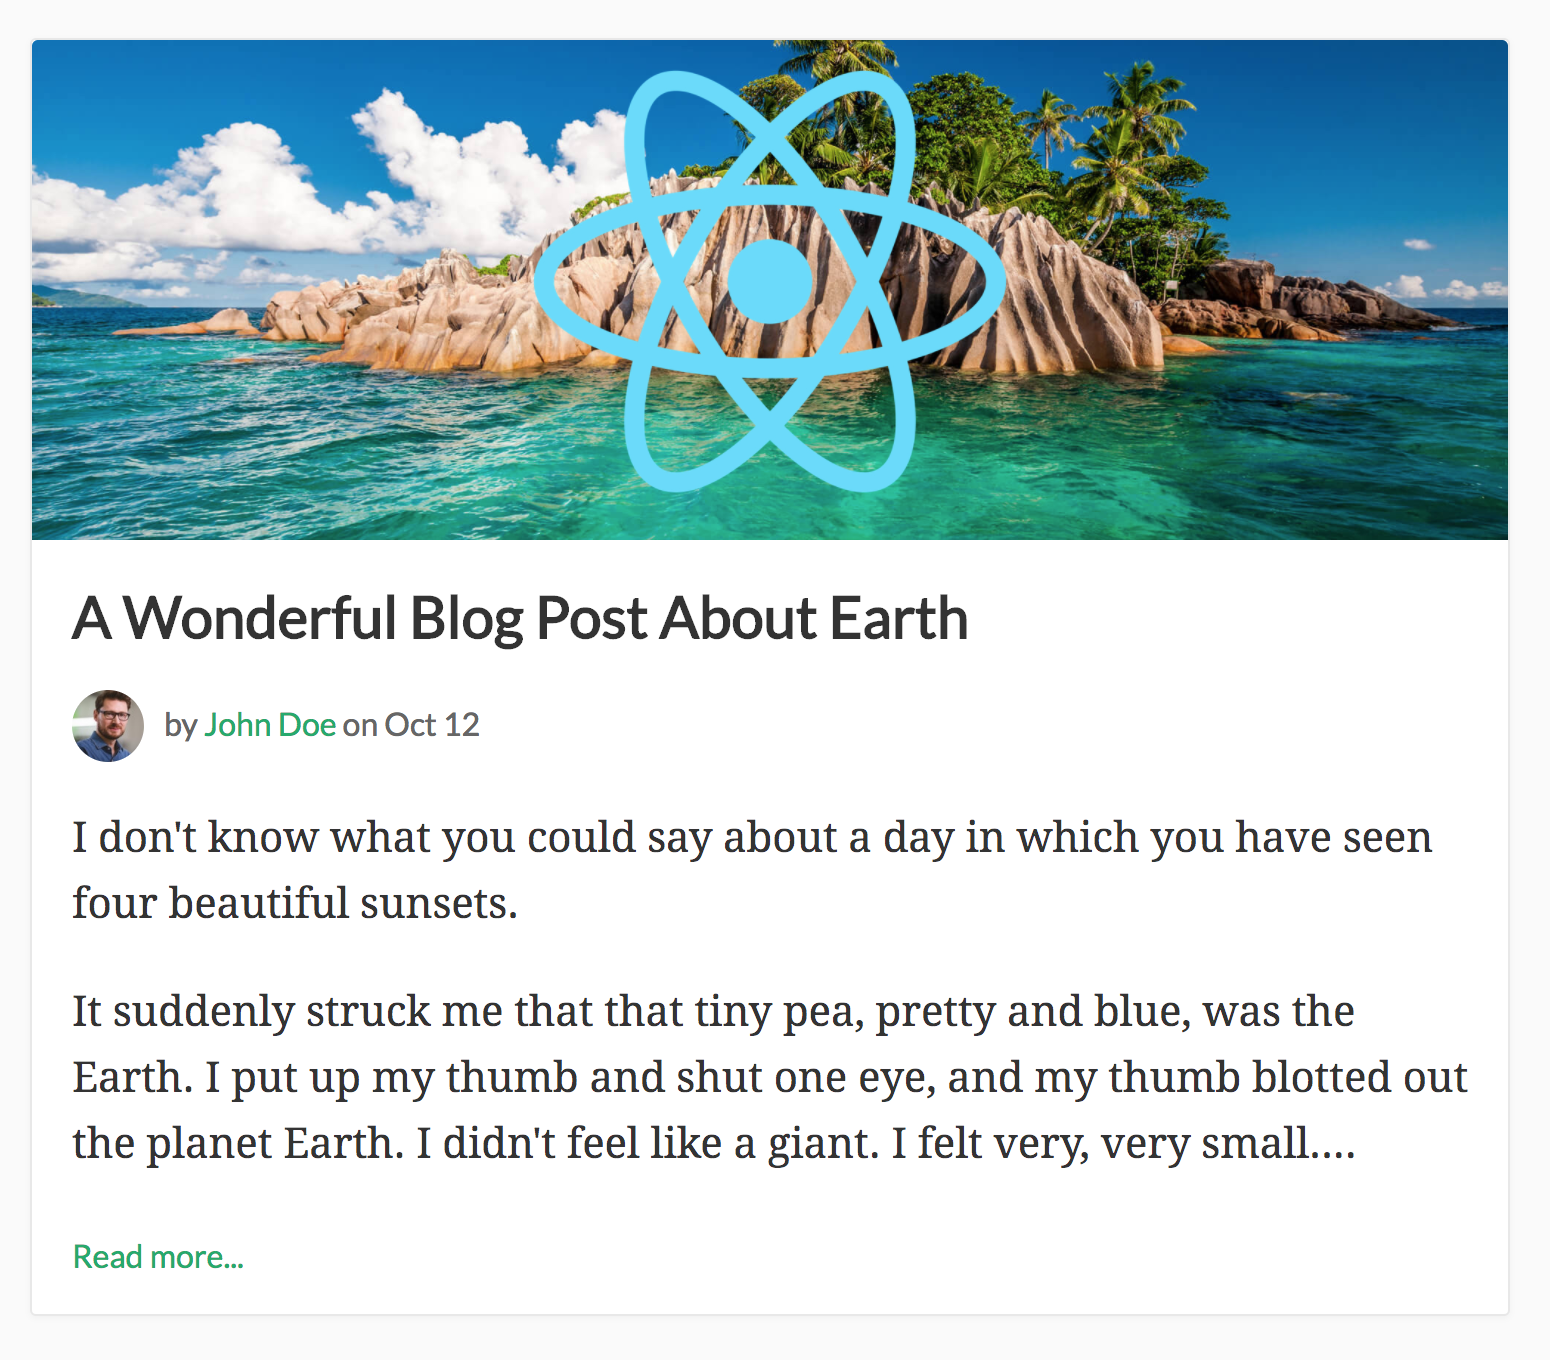 /how-to-build-a-simple-blog-using-react-and-graphql-e32d78bbd724 feature image